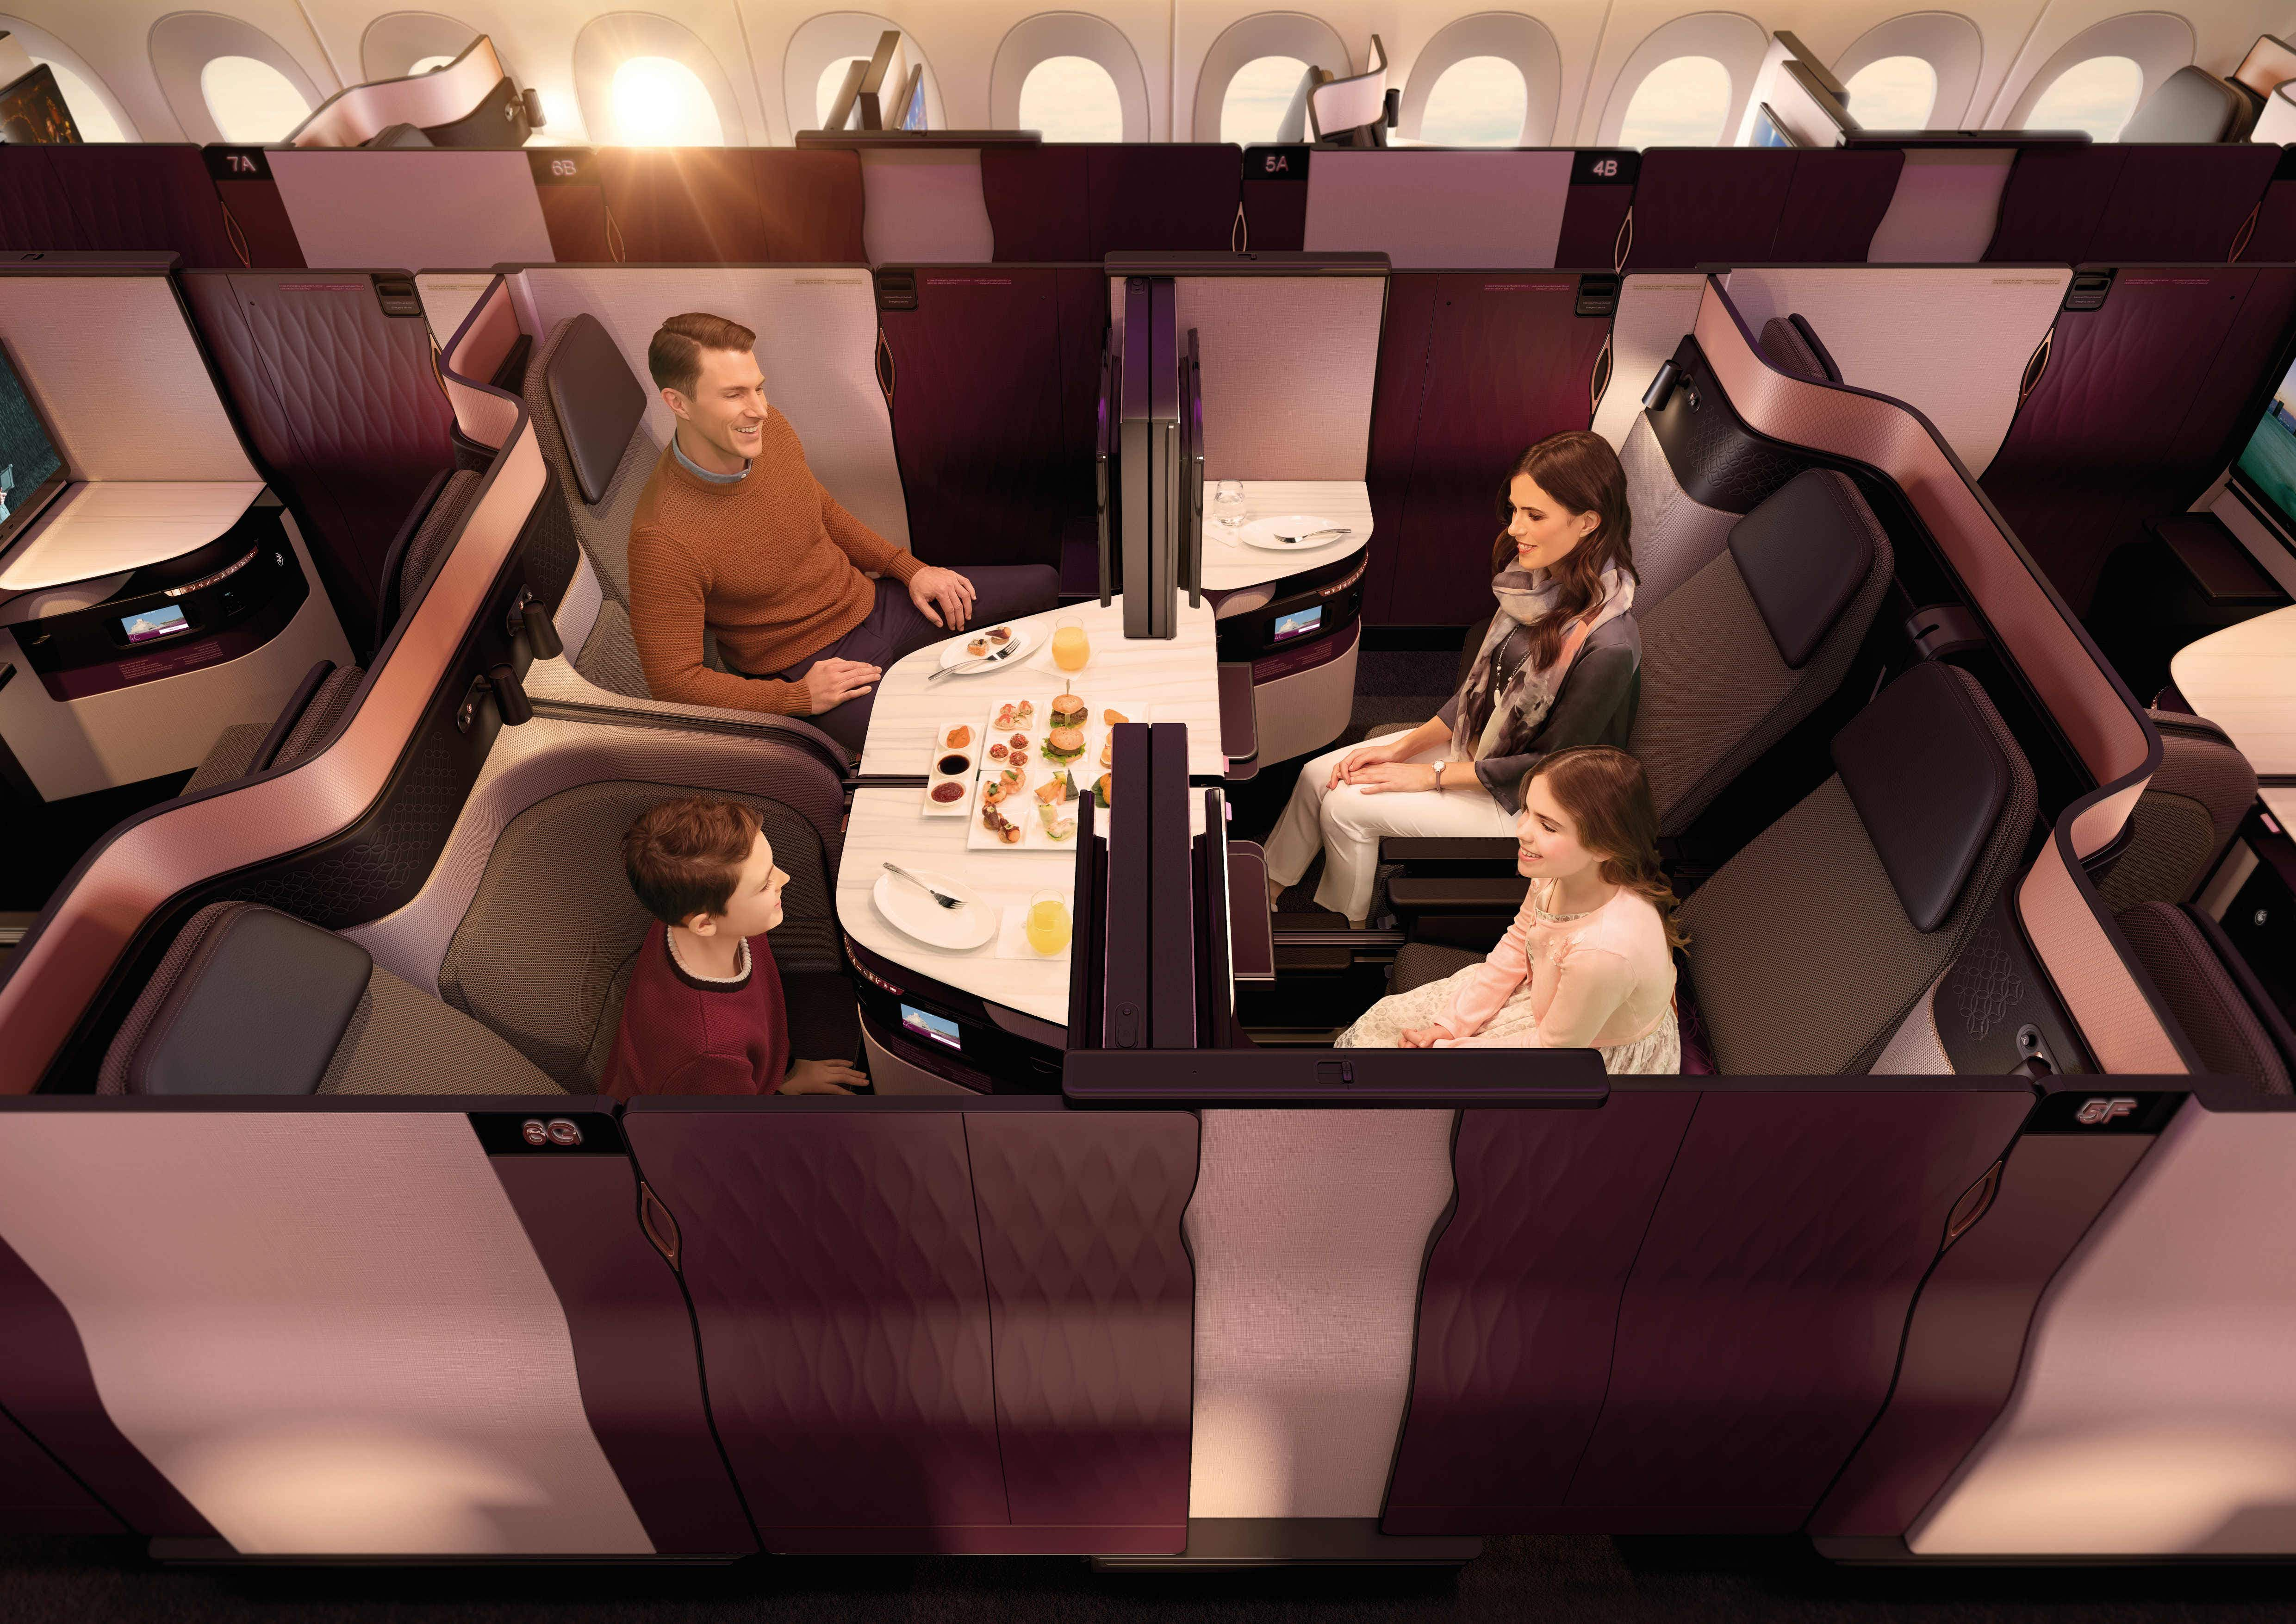 Beds, suites and VR: innovative plane features set to make travel better